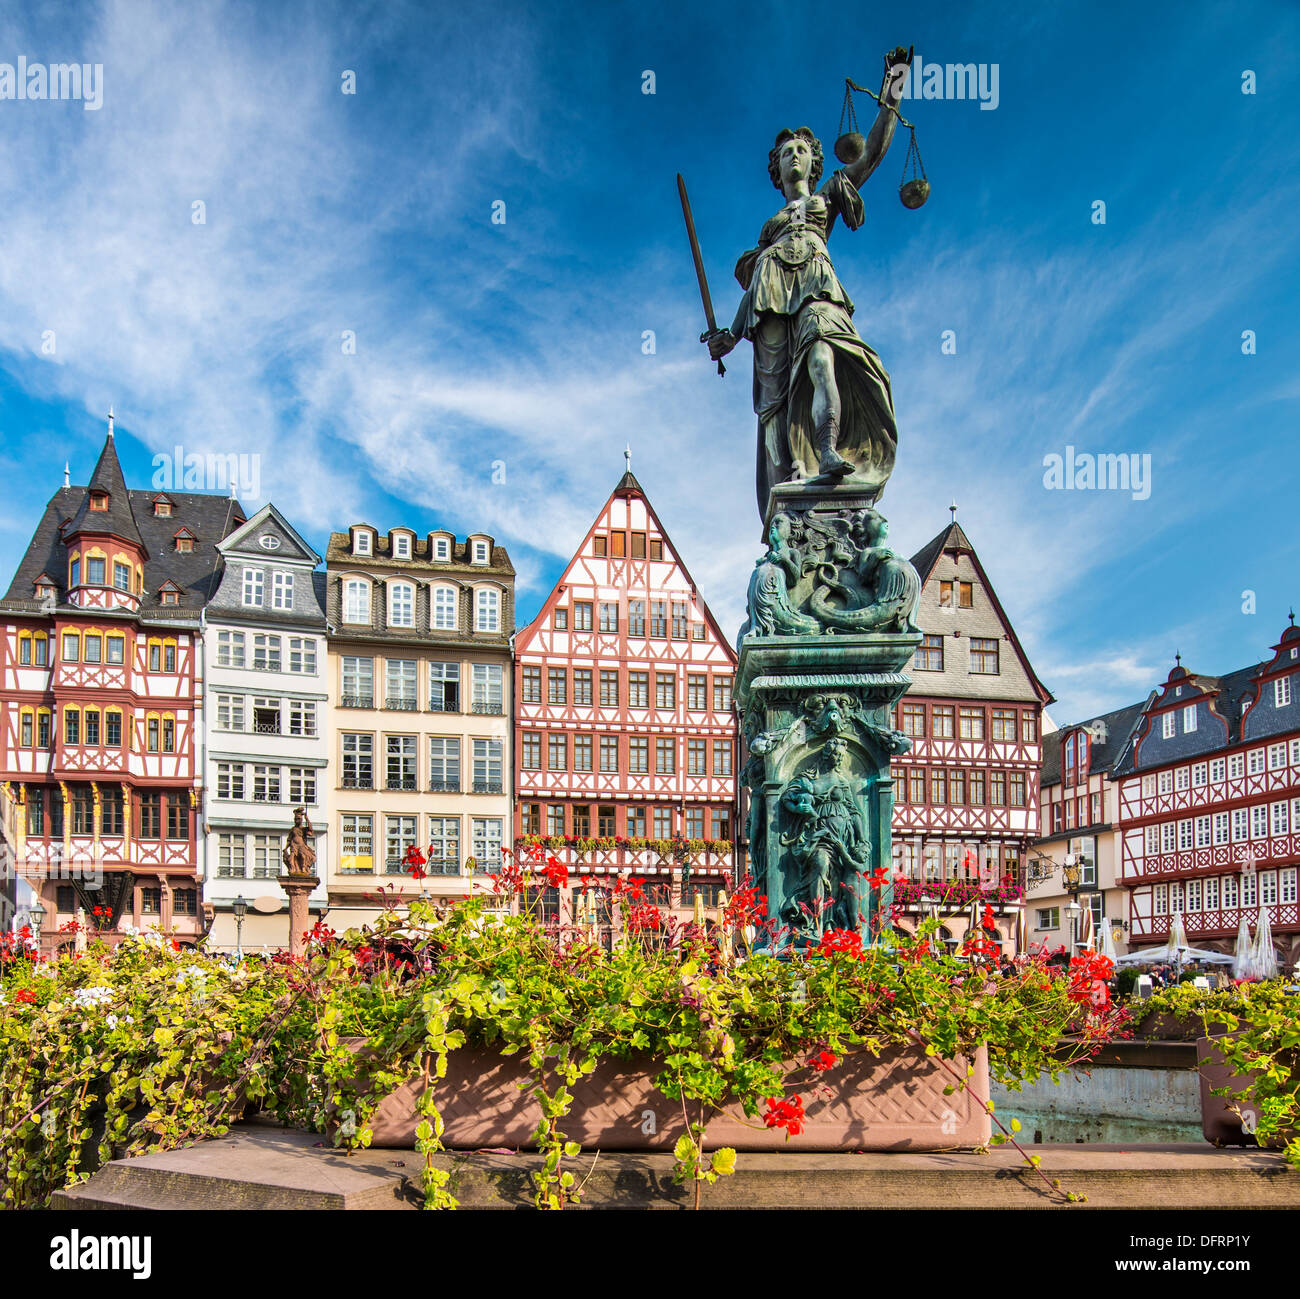 The Old City of Frankfurt, Germany. - Stock Image